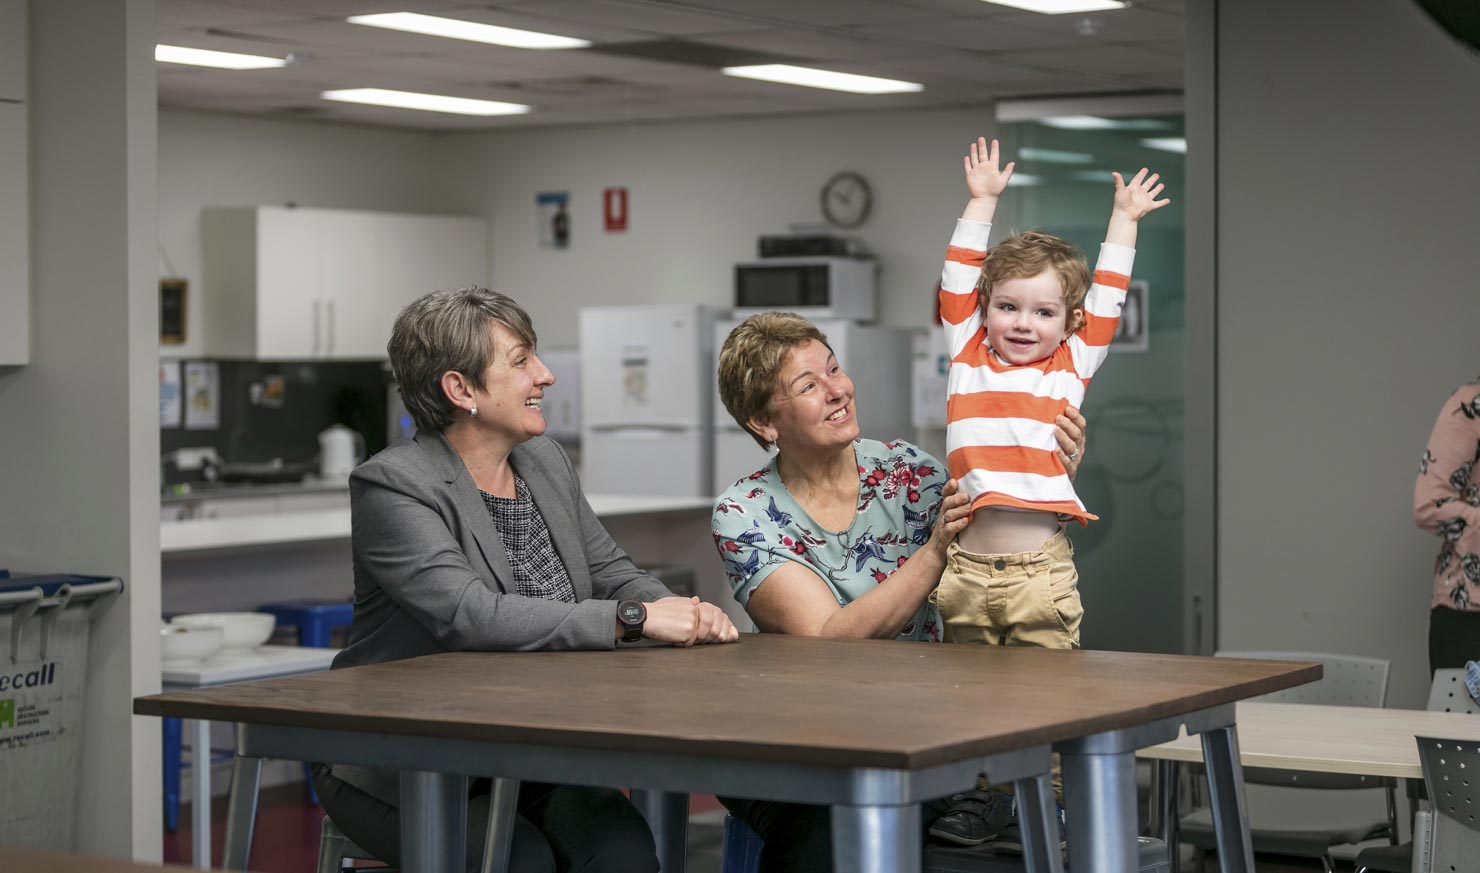 Workers entertain a child in their workplace on Bring Your Child To Work Day